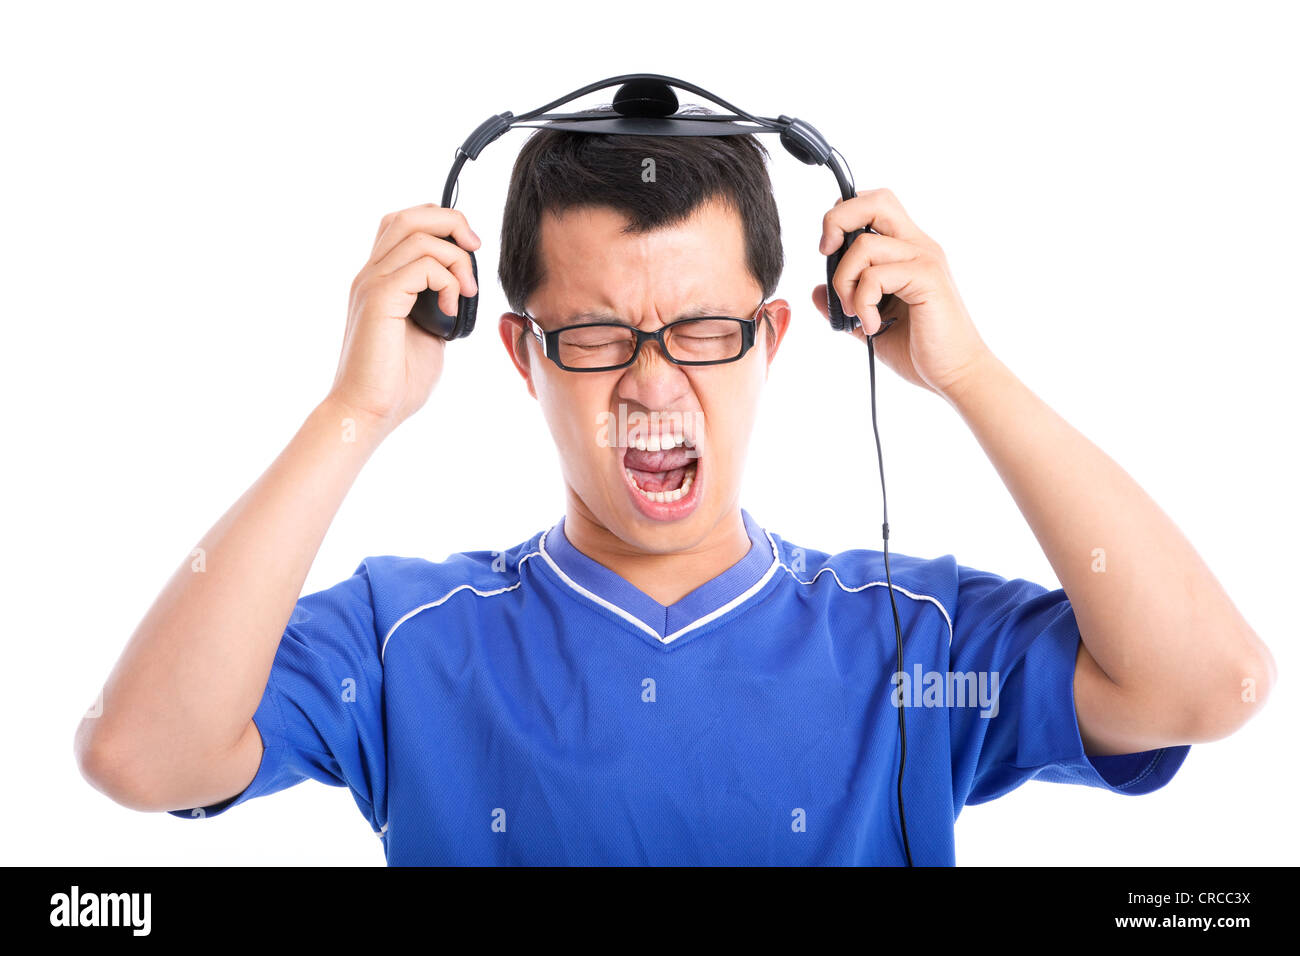 Young man expressing loud sound - Stock Image